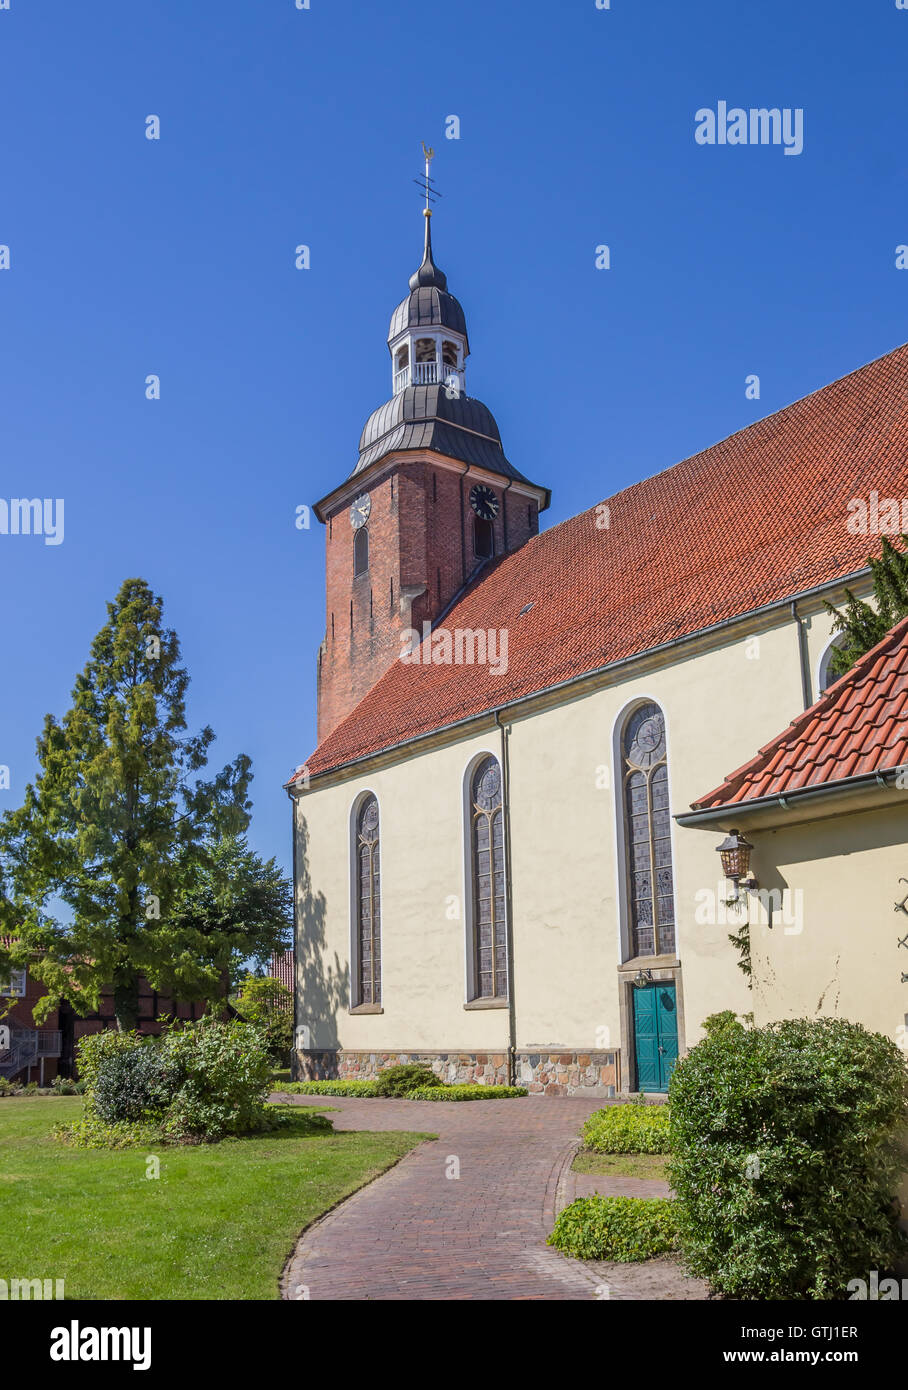 st andreas kirche stock photos st andreas kirche stock images alamy. Black Bedroom Furniture Sets. Home Design Ideas